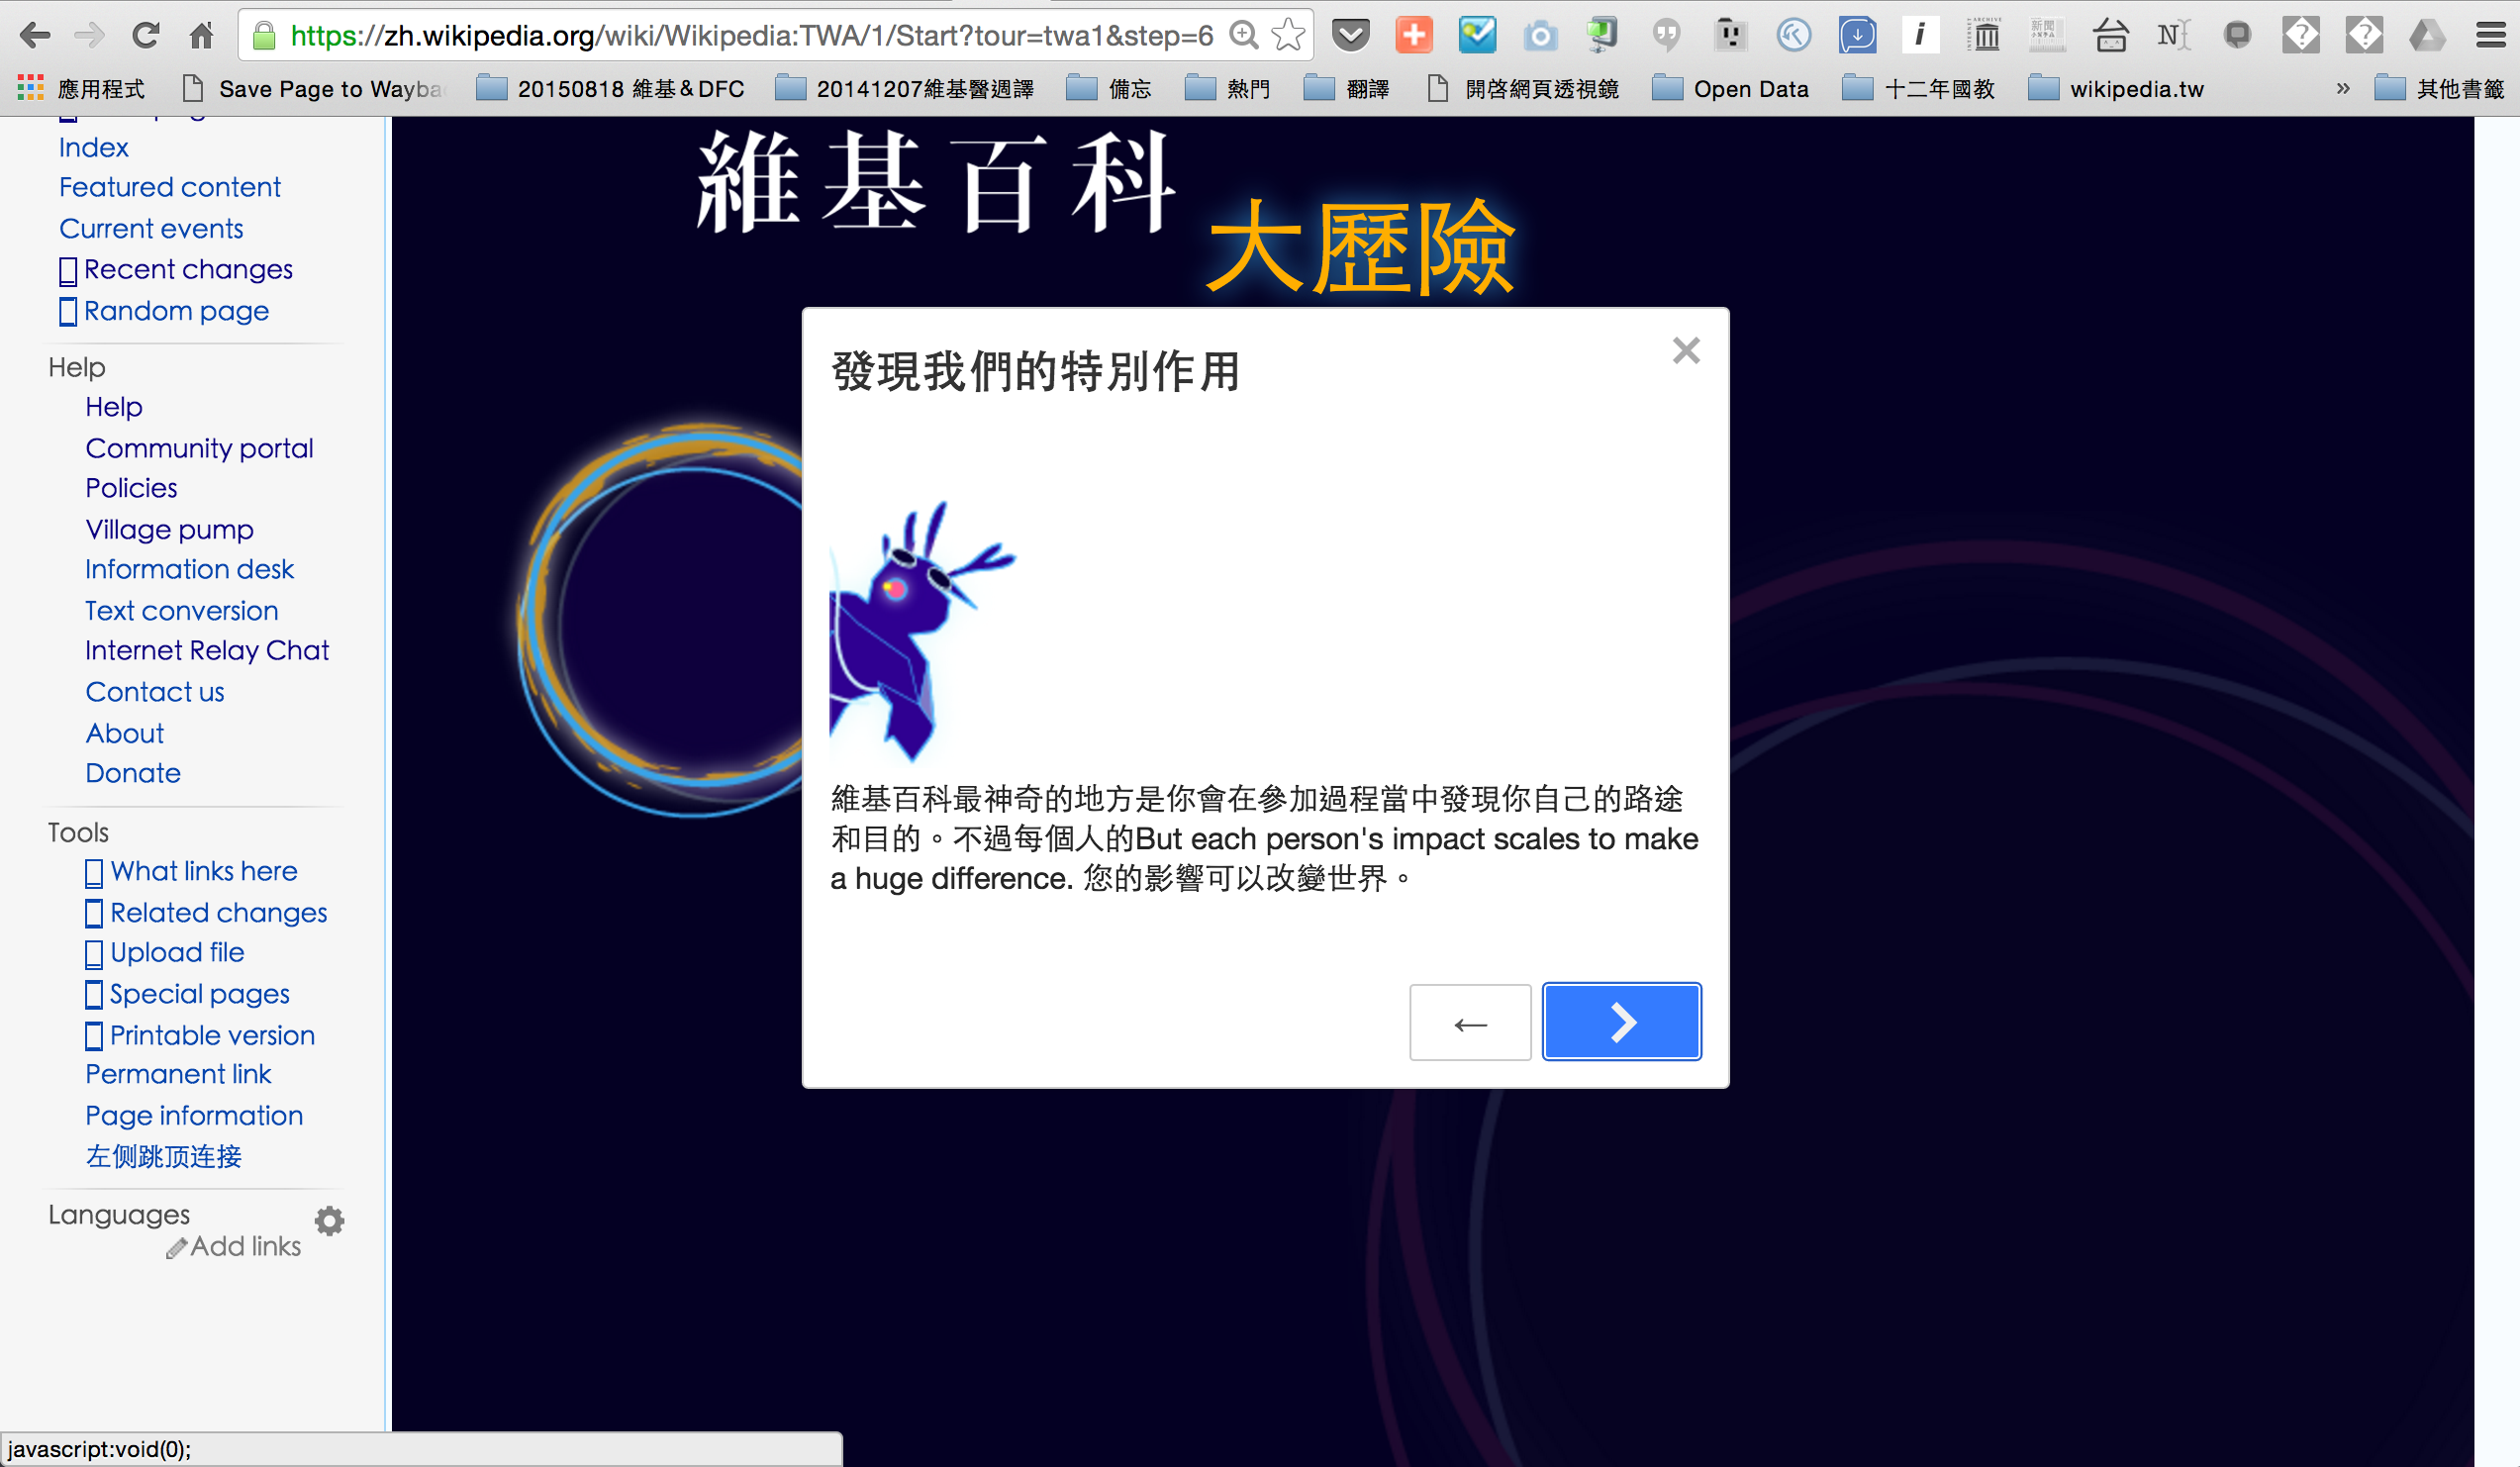 File:Screenshot of The Wikipedia Adventure in Chinese